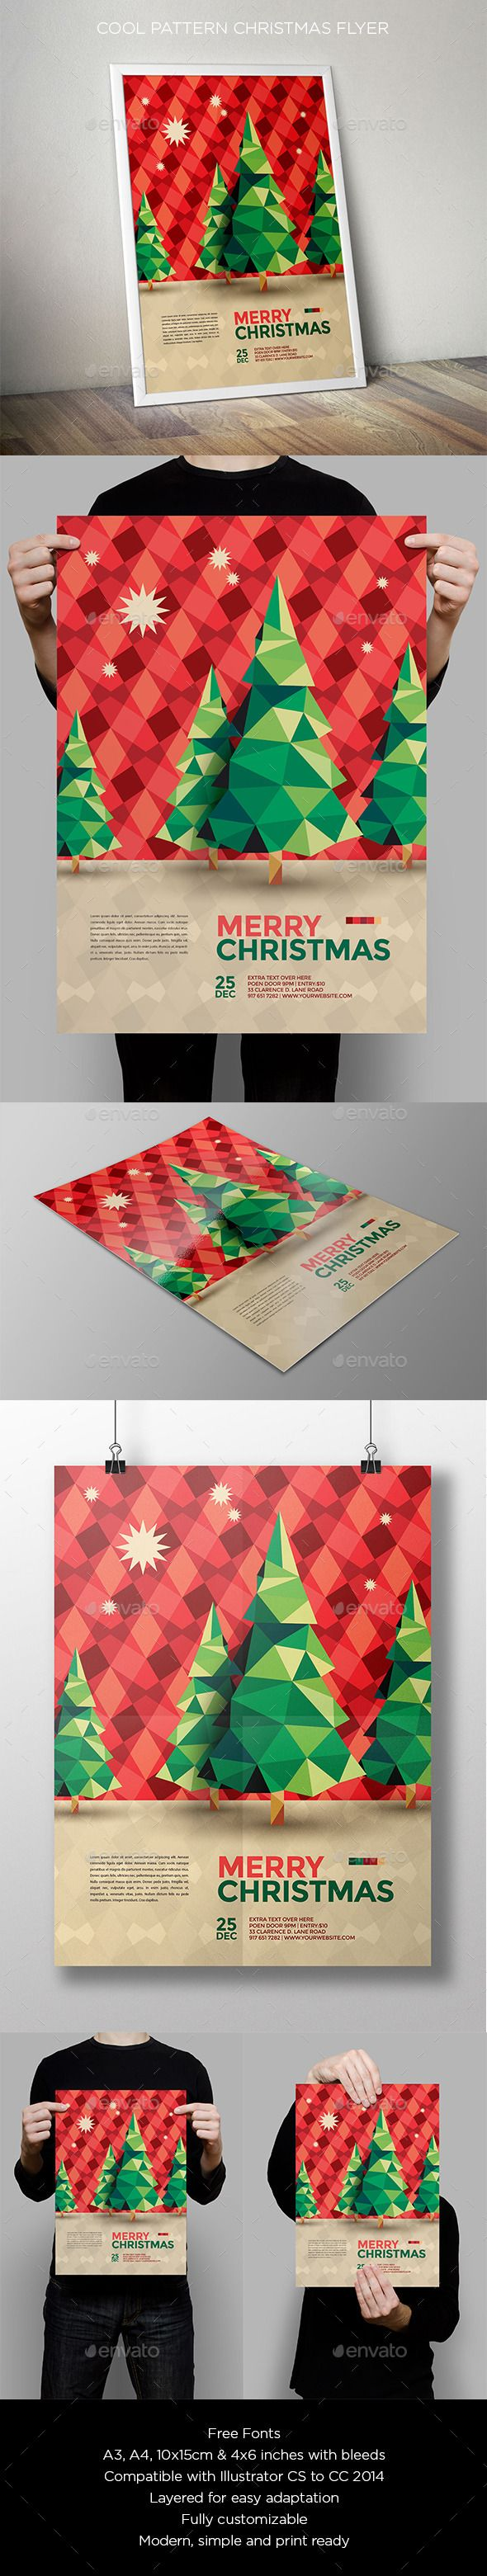 15 beautiful christmas posters and flyer design templates texts cool pattern christmas flyer